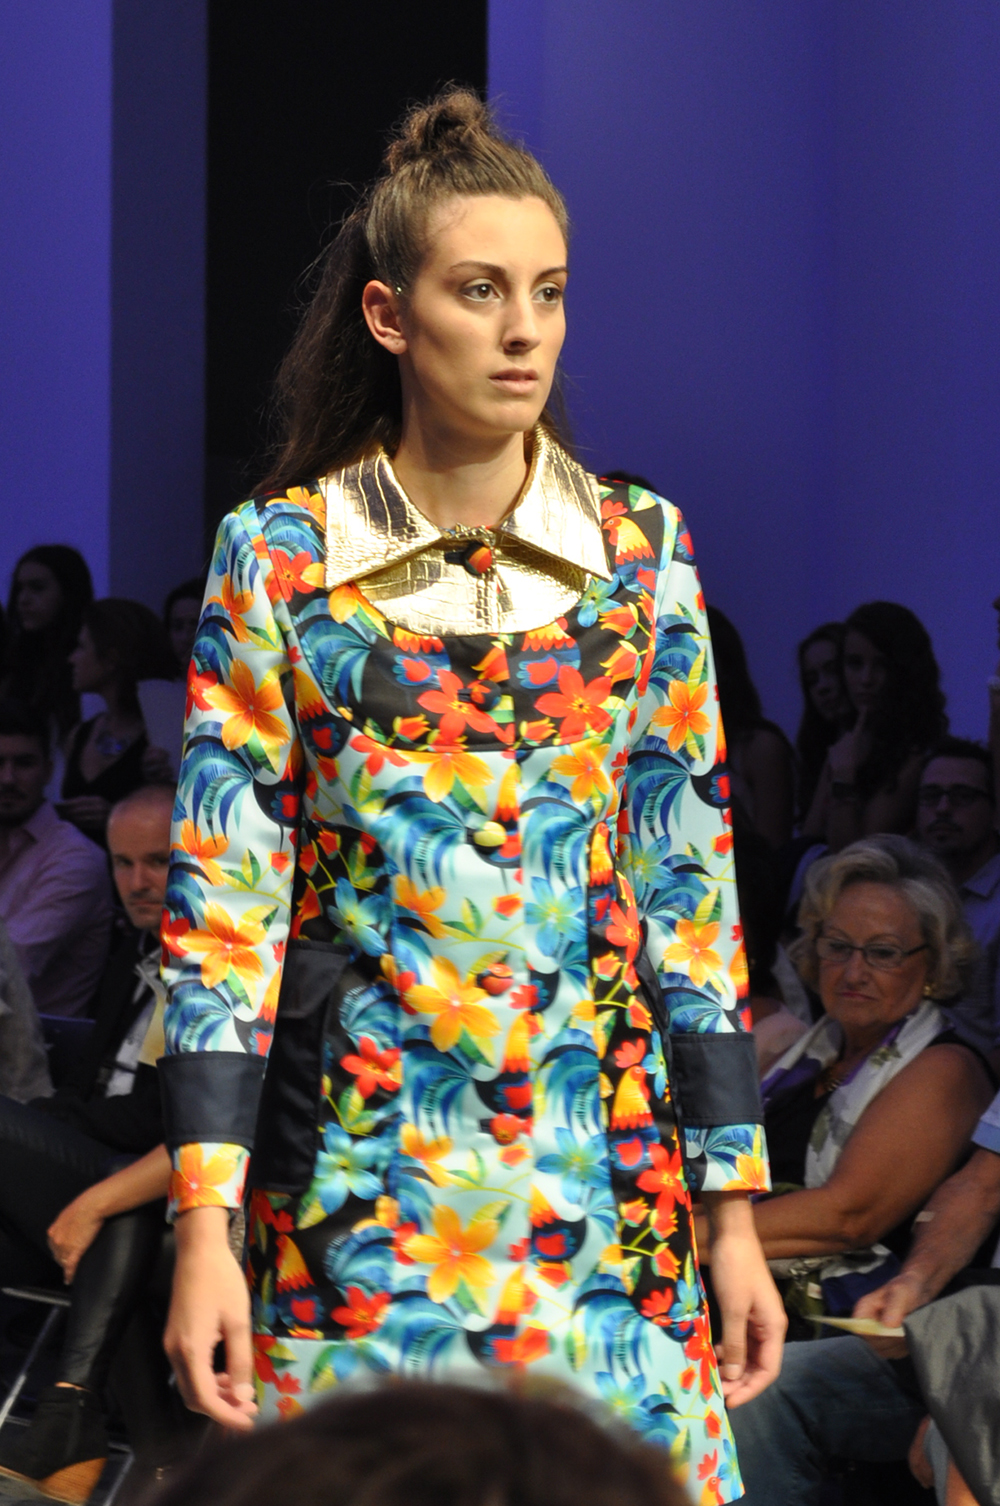 fblogger fashion blog valencia spain VFW XVII day 3 fashionshow, something fashion maria cozar couture, eugenio loarce canto del gallo, moda valencia 2014 spring/summer collection fashionweek, elegant, colorful